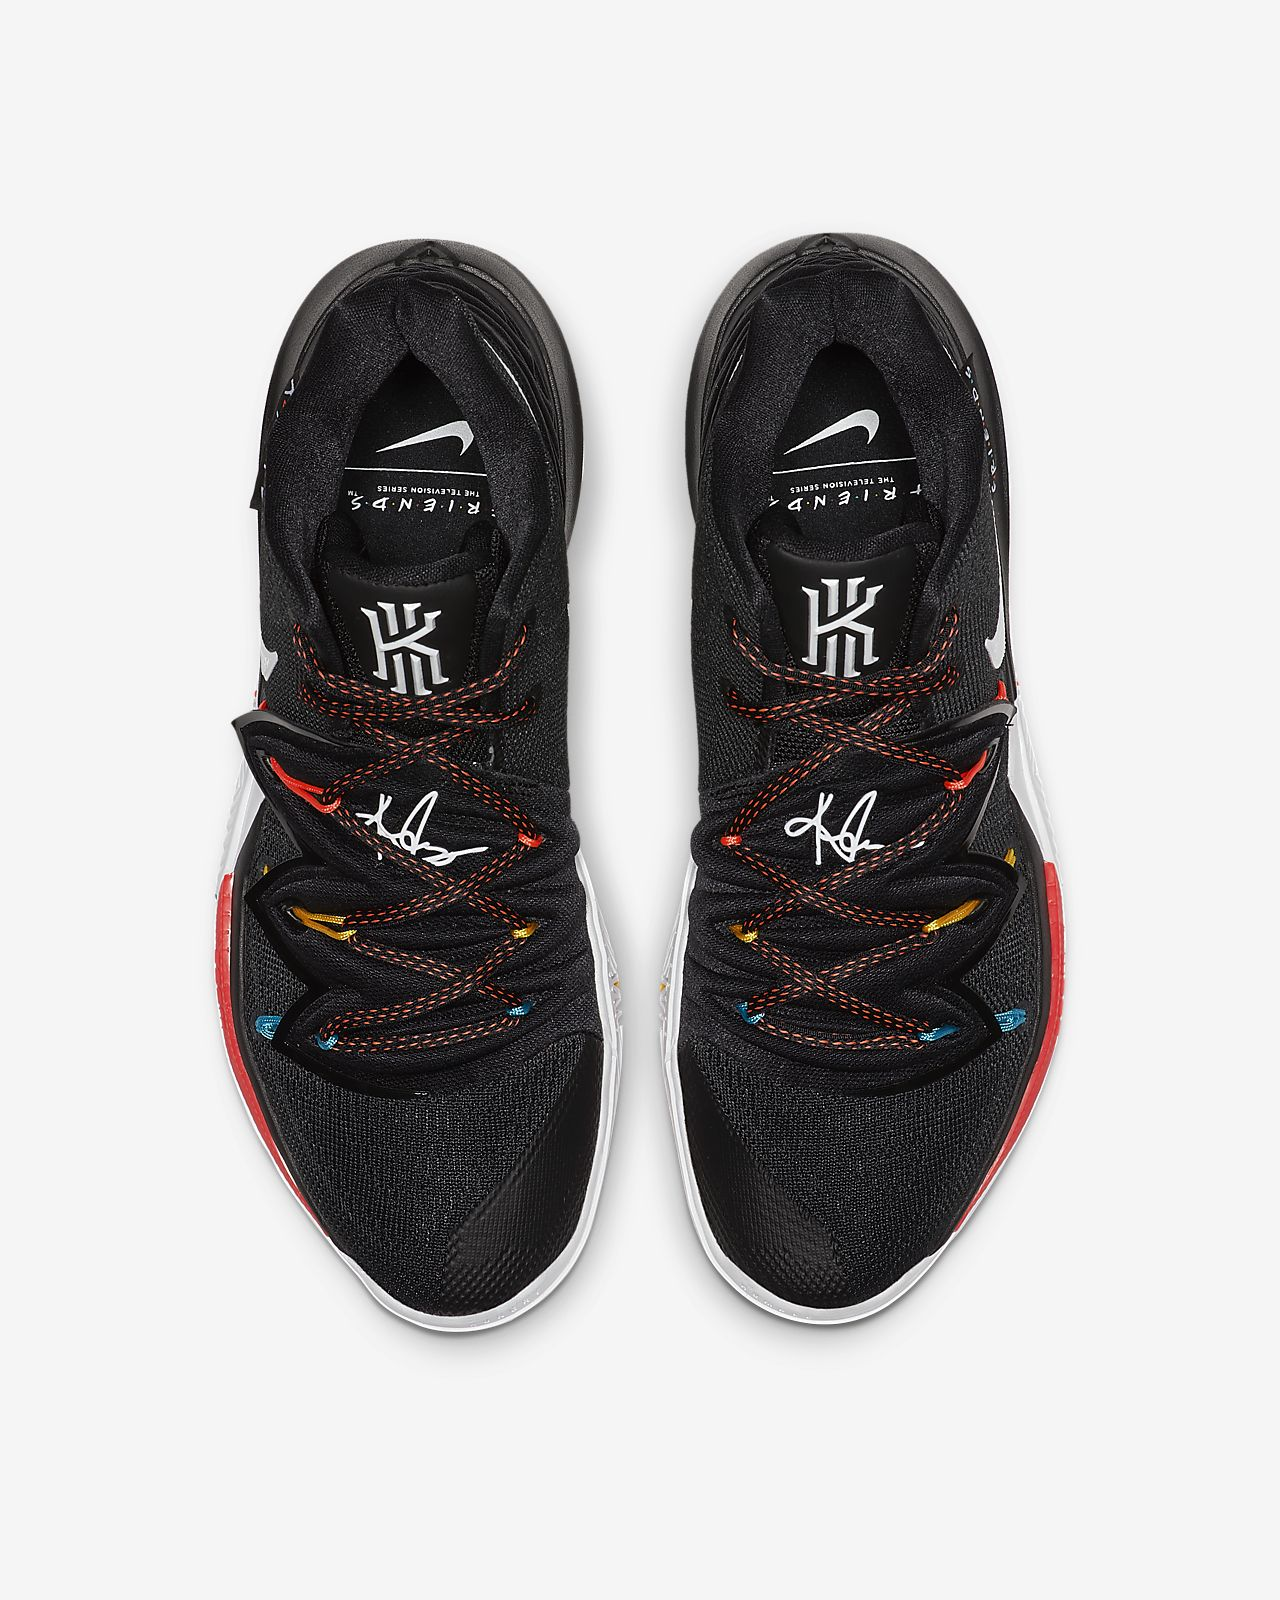 864f3b38f62 Kyrie 5 x Friends Basketball Shoe. Nike.com